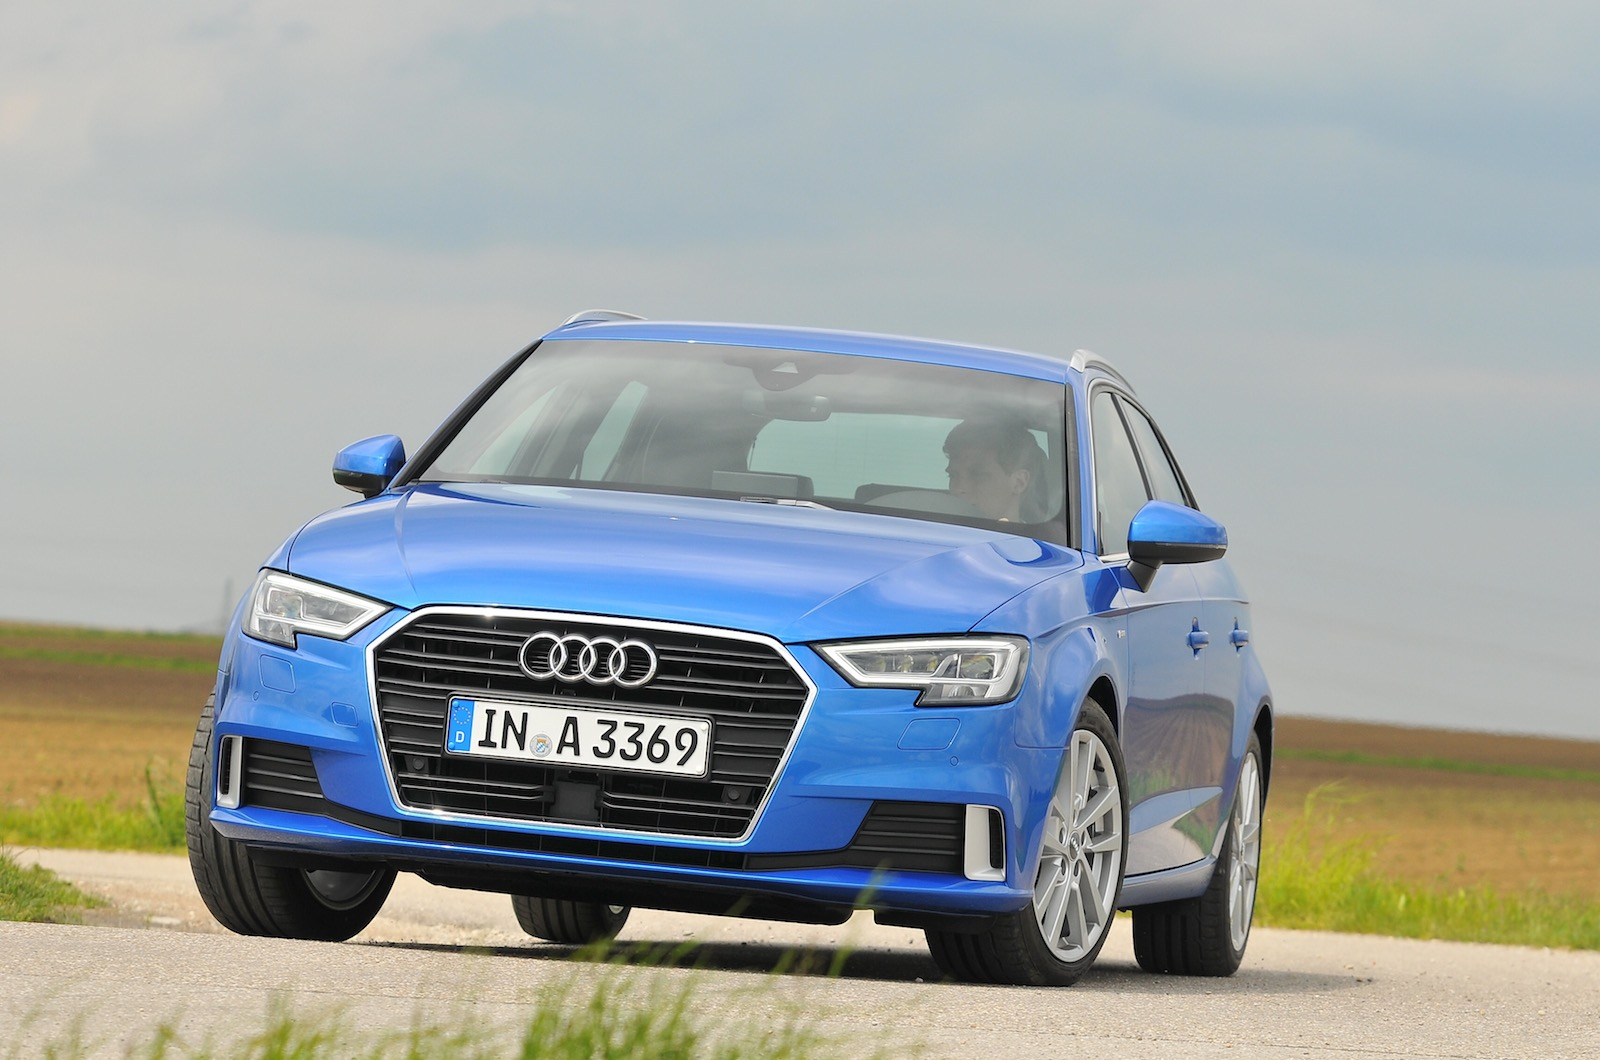 2016 Audi A3 Sportback 2.0 TDI 150 S line S tronic review ...